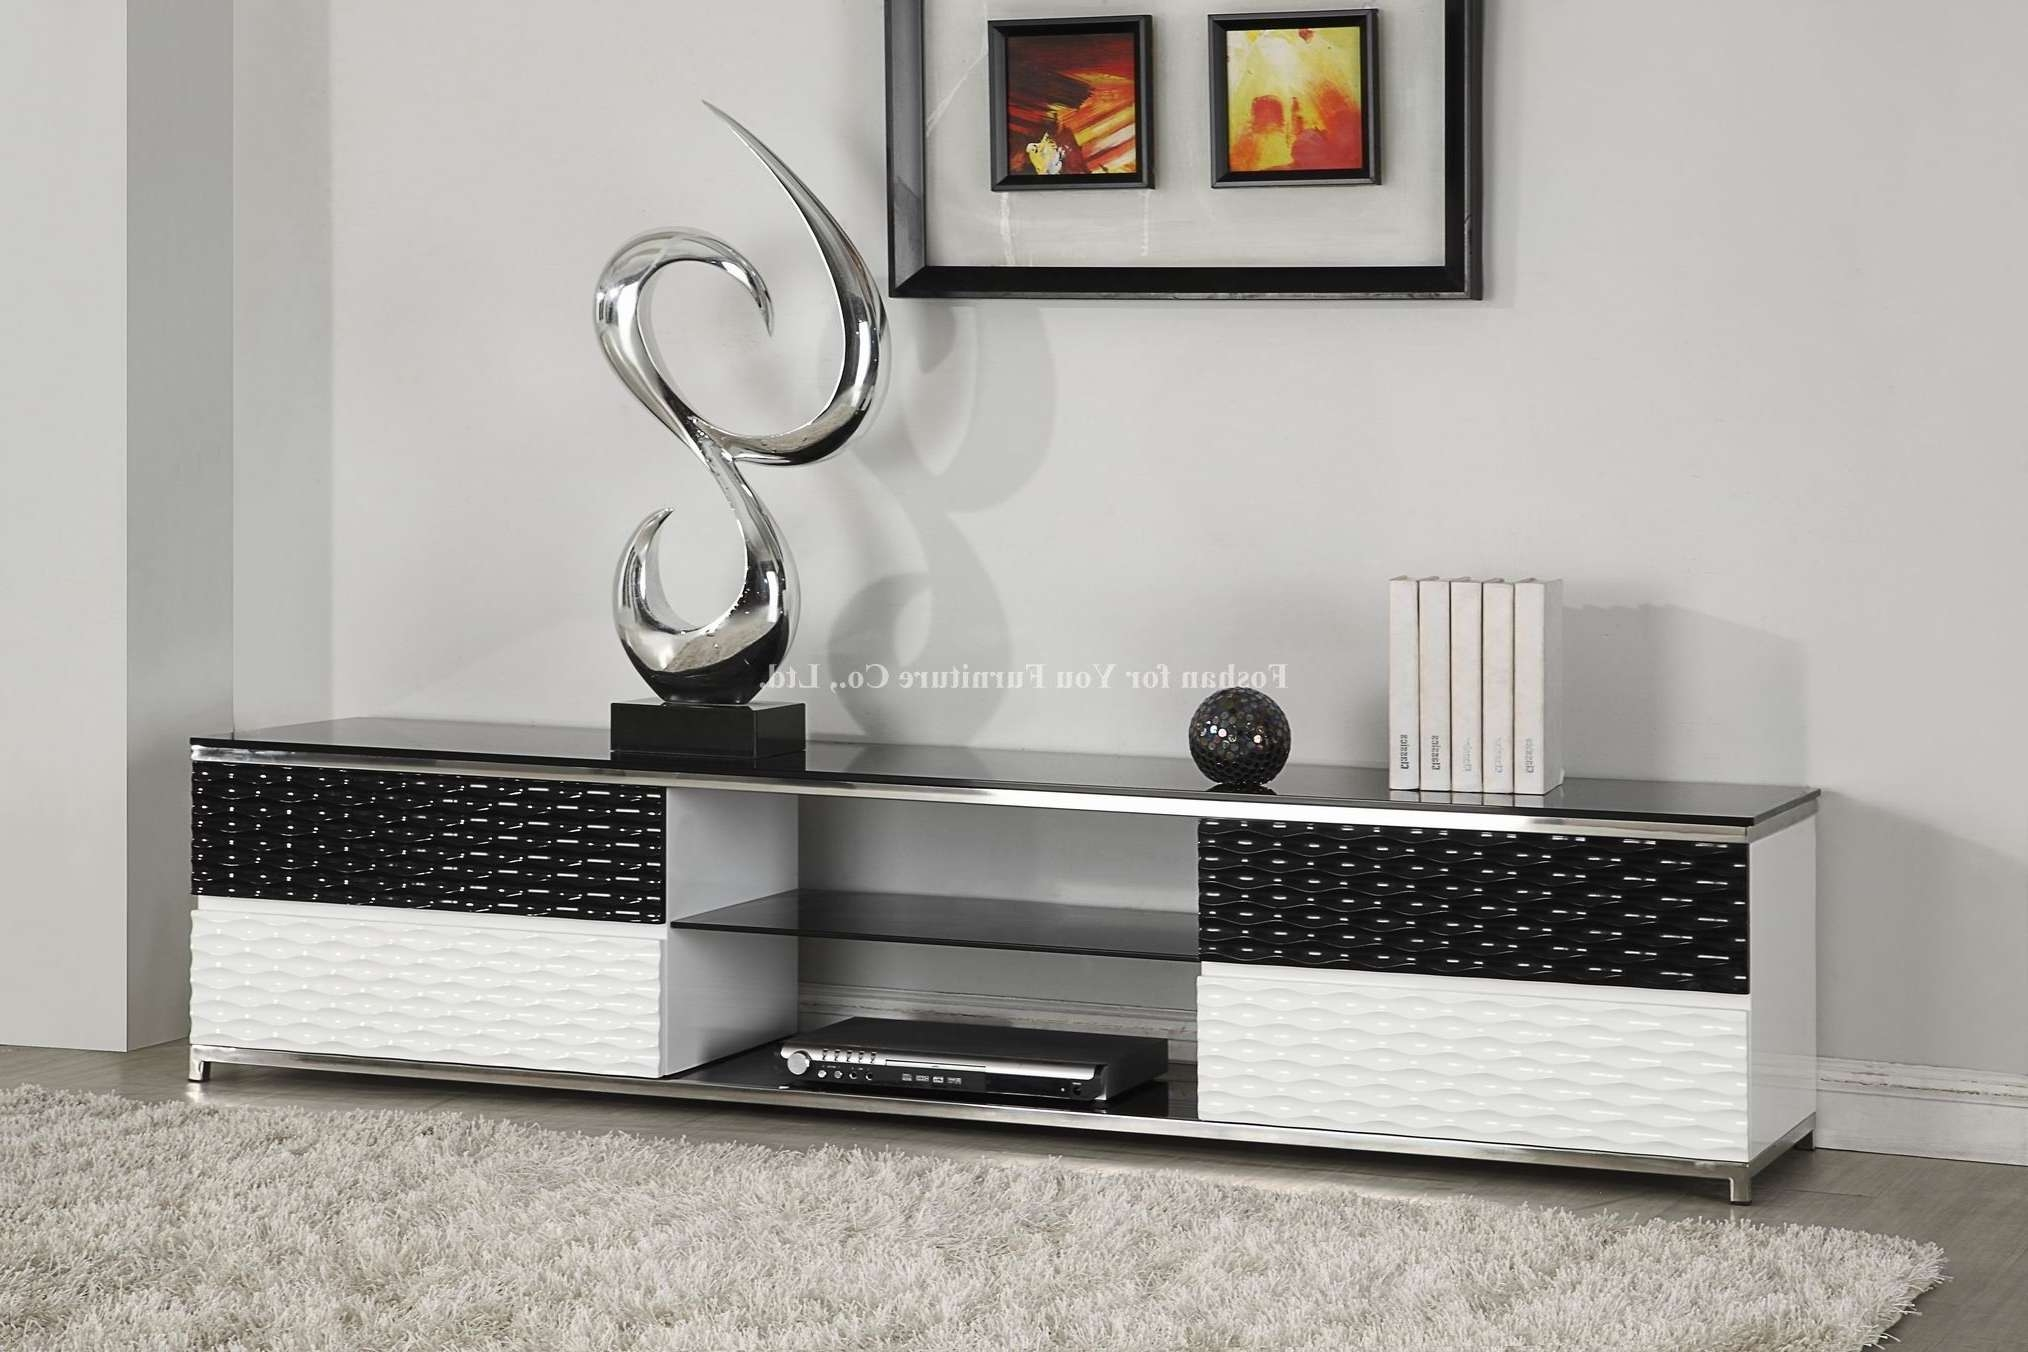 Charmant Outstanding Luxury Tv Stands 25 Luxury Corner Tv Stands Find This  Pertaining To Luxury Tv Stands